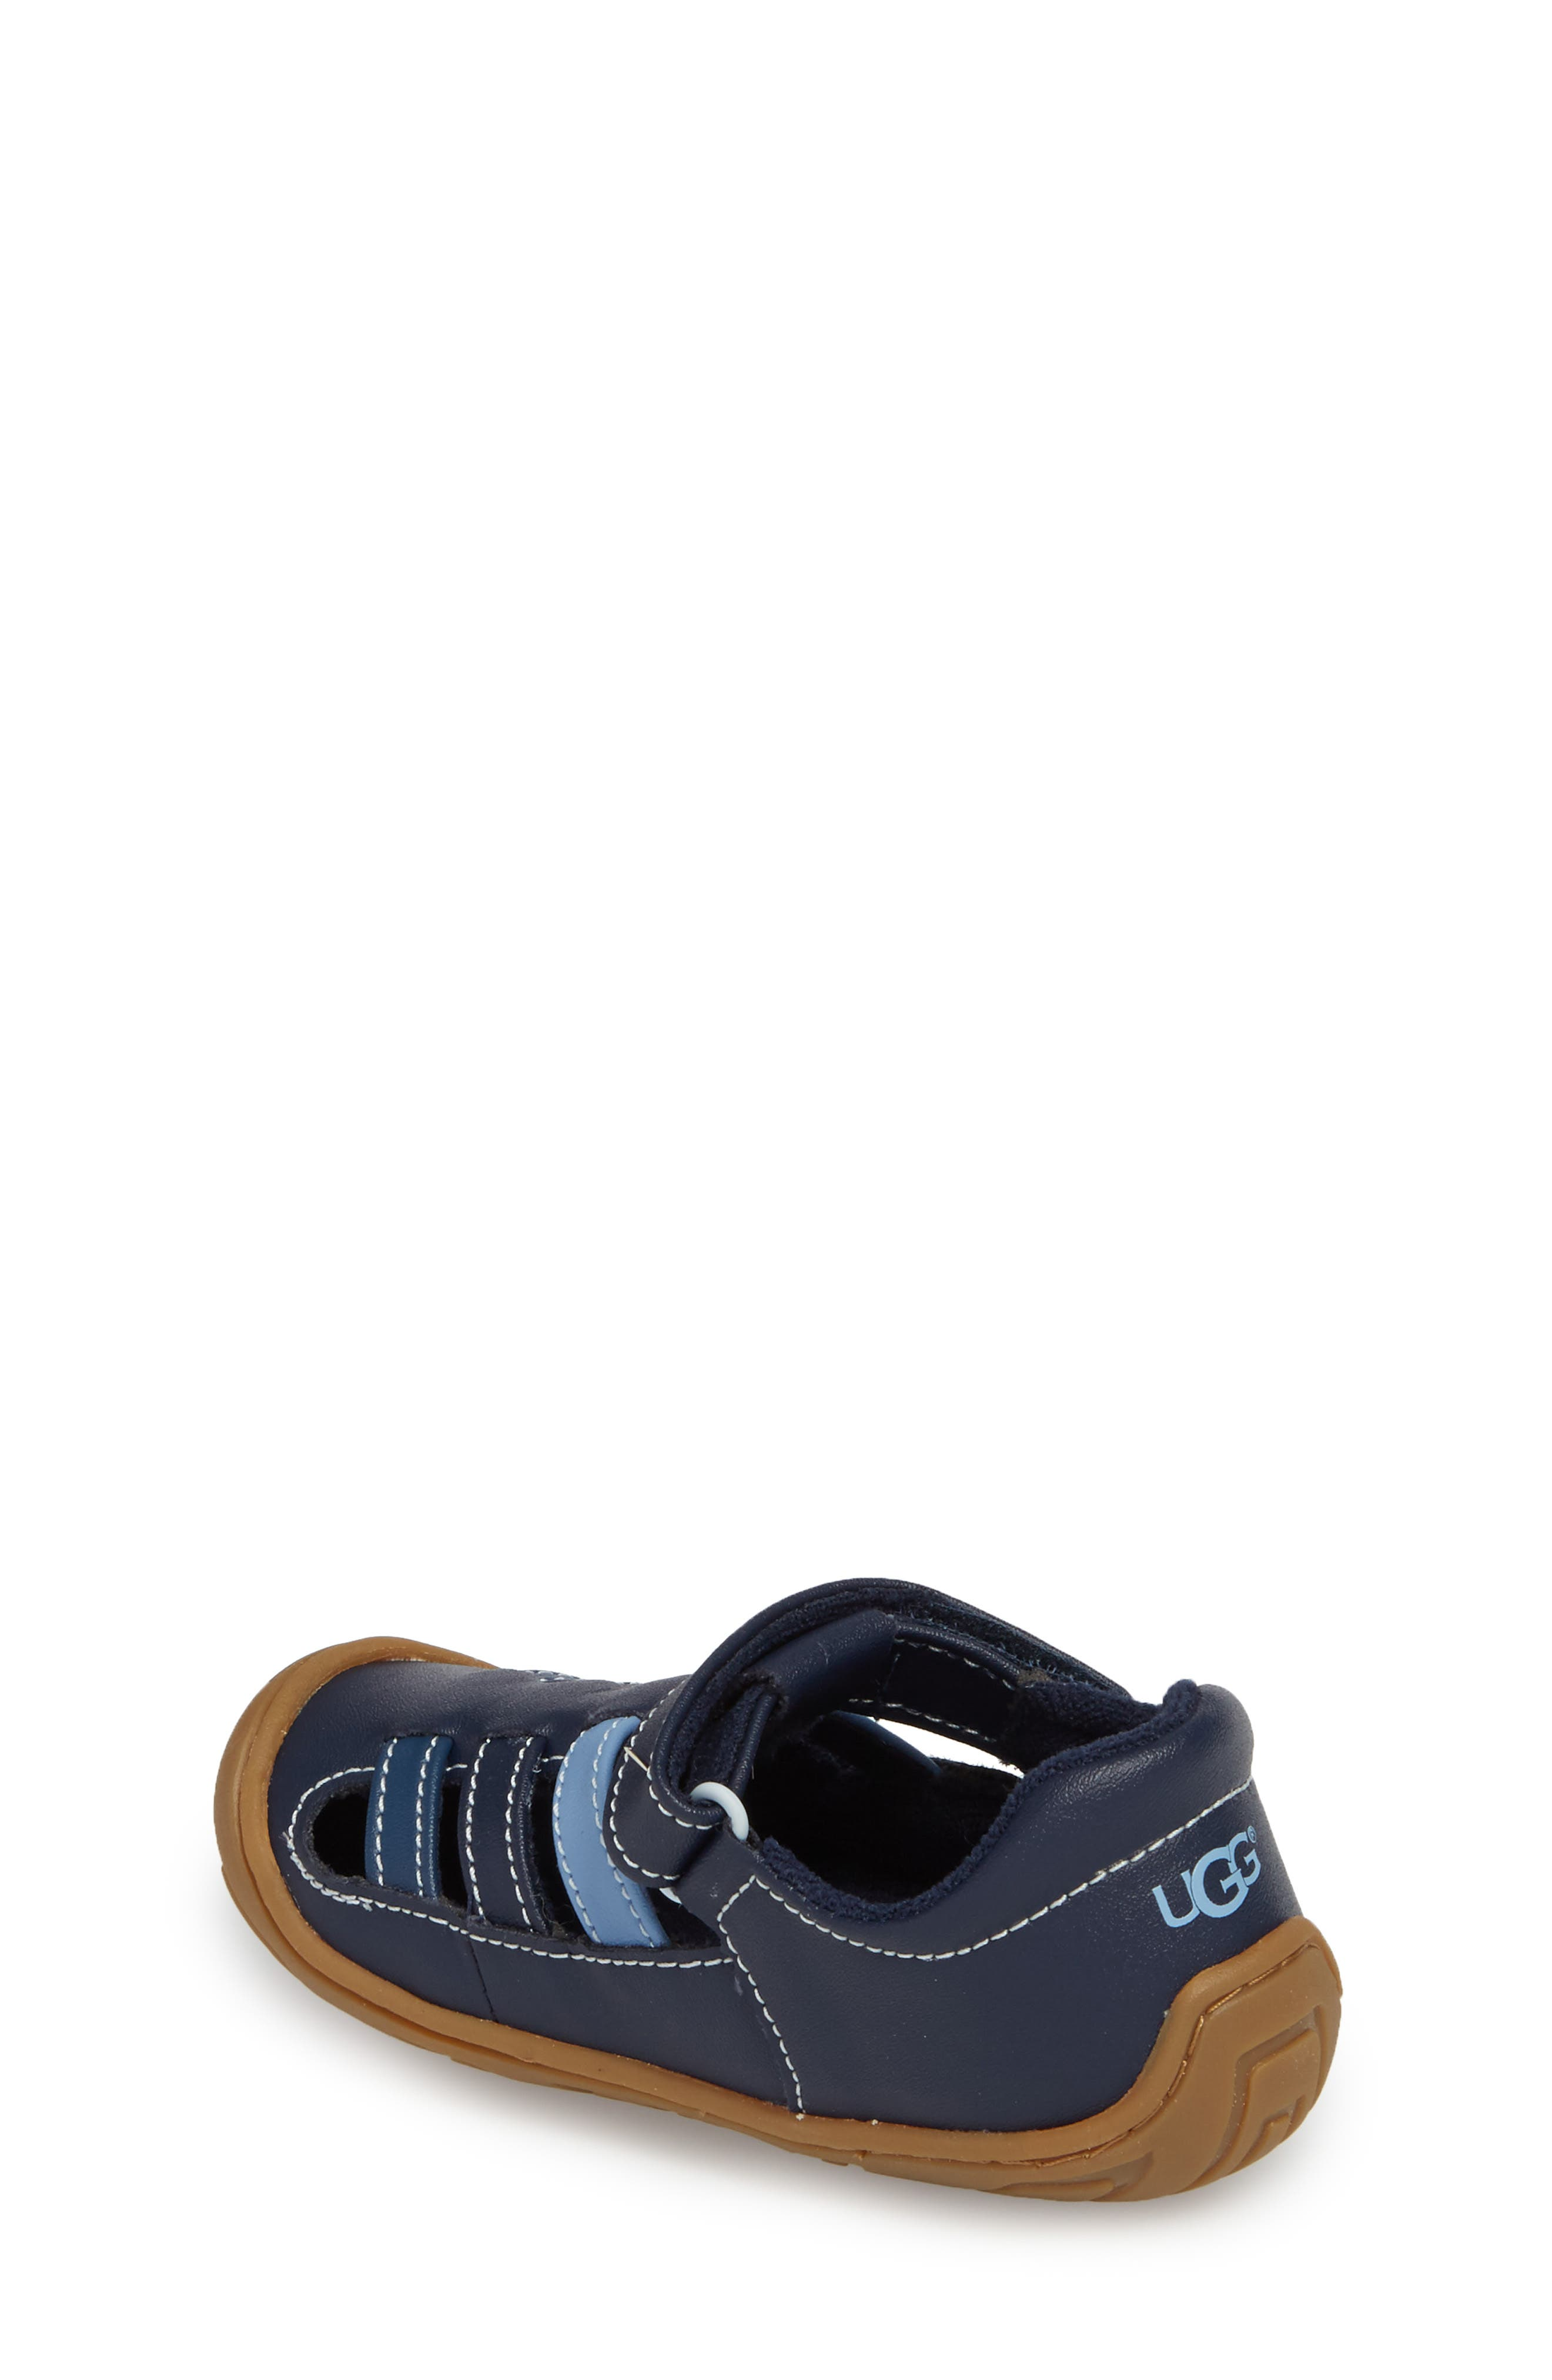 Santore Sandal,                             Alternate thumbnail 2, color,                             NAVY